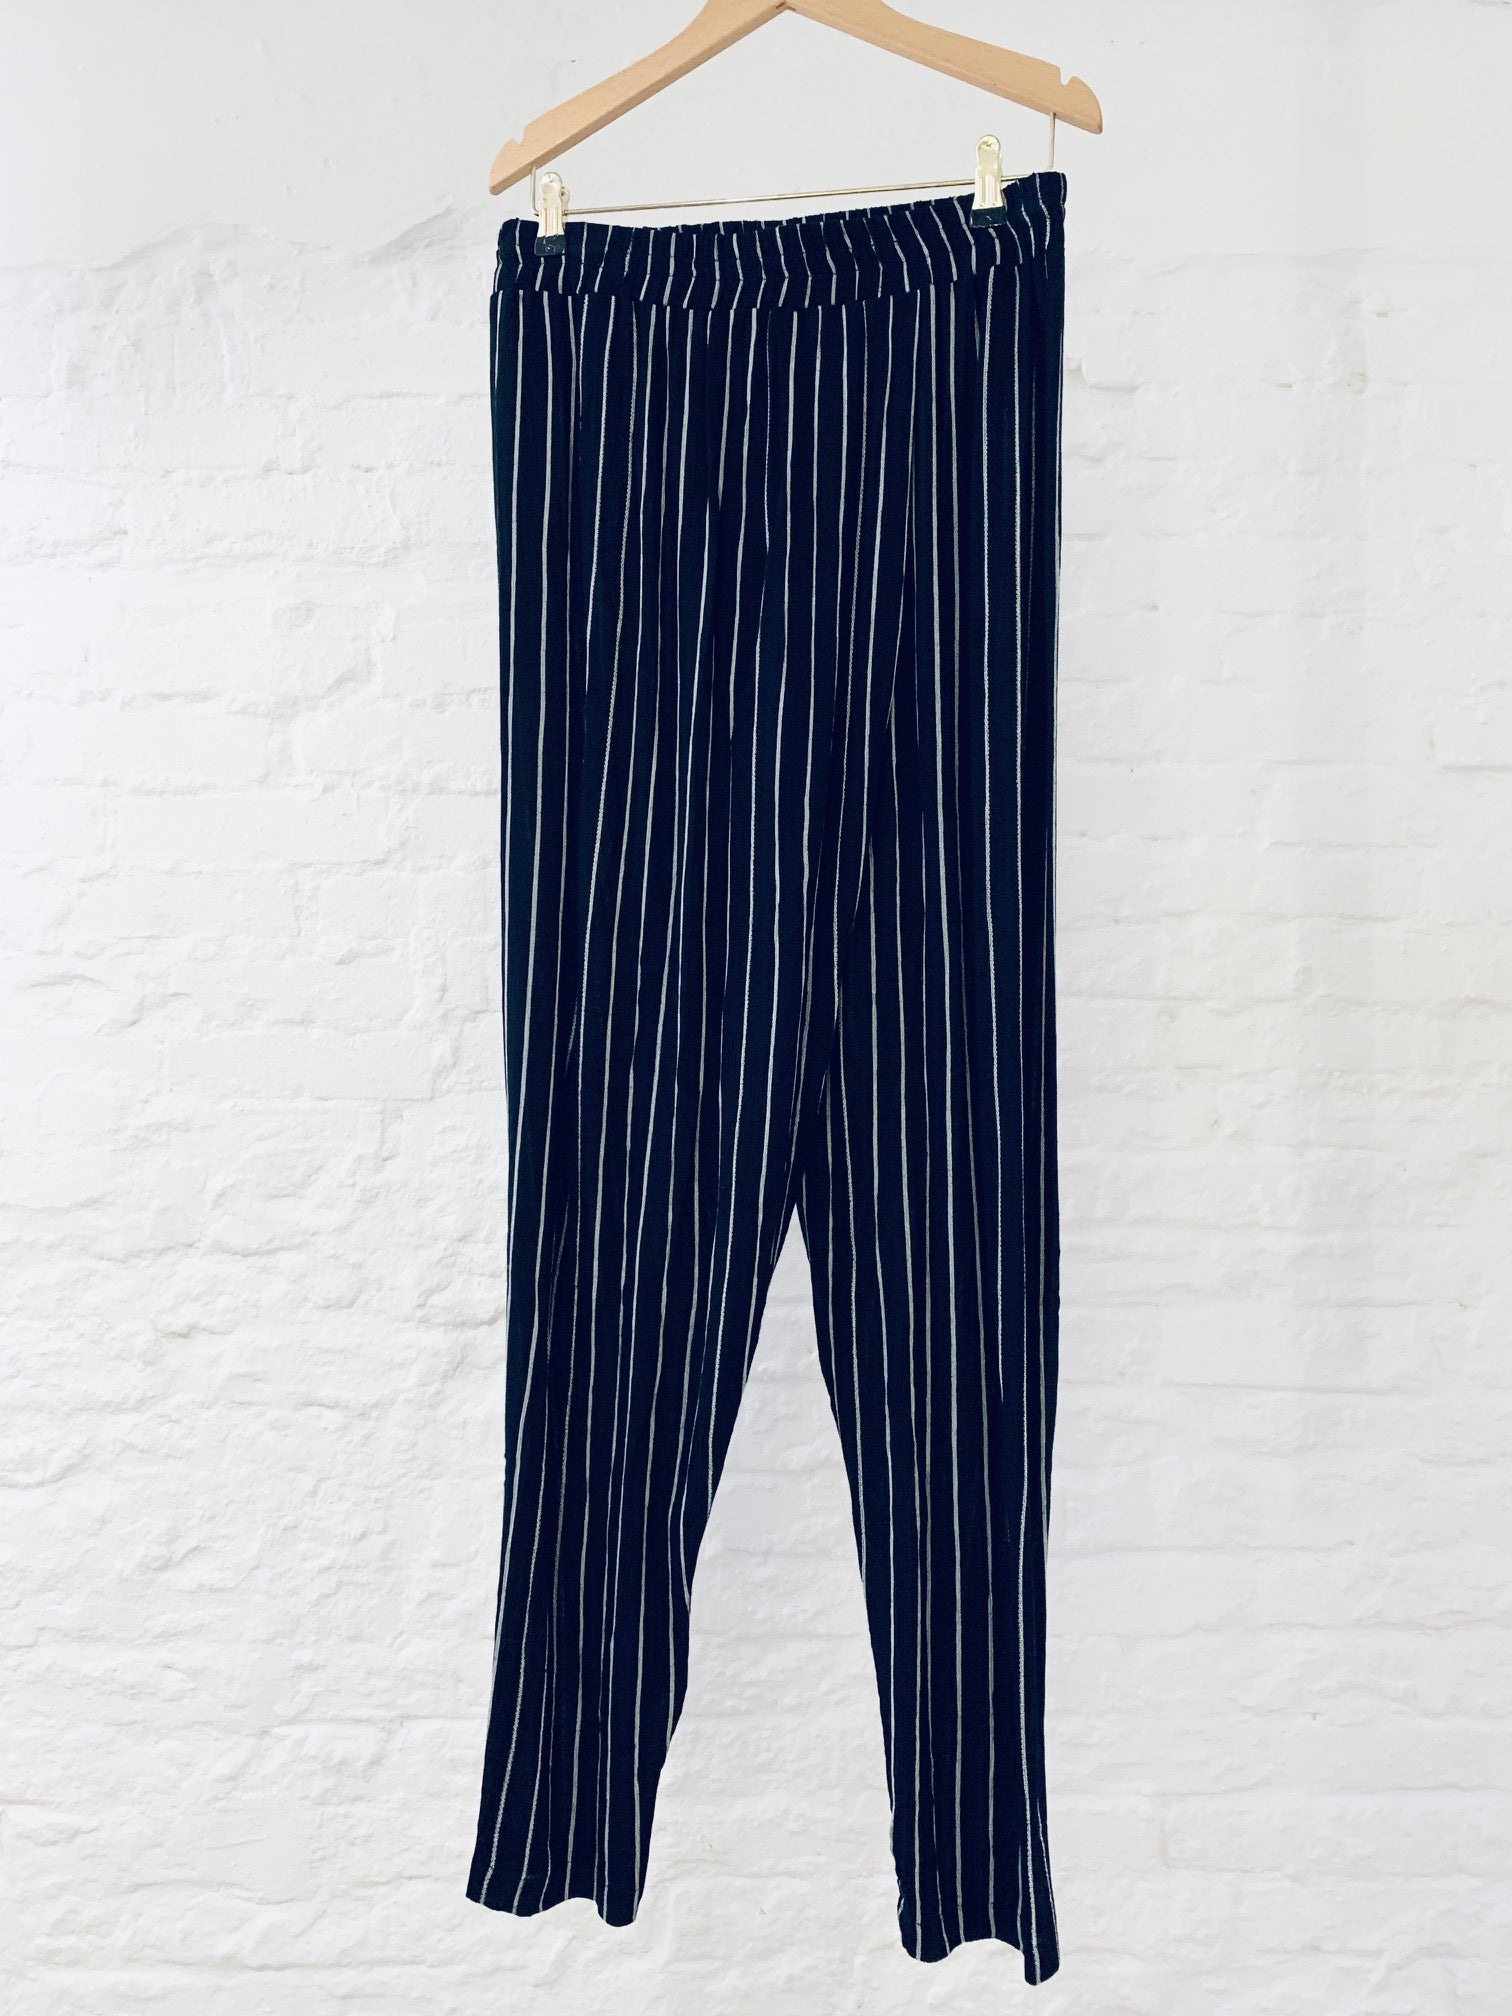 Shanti pants pin stripe